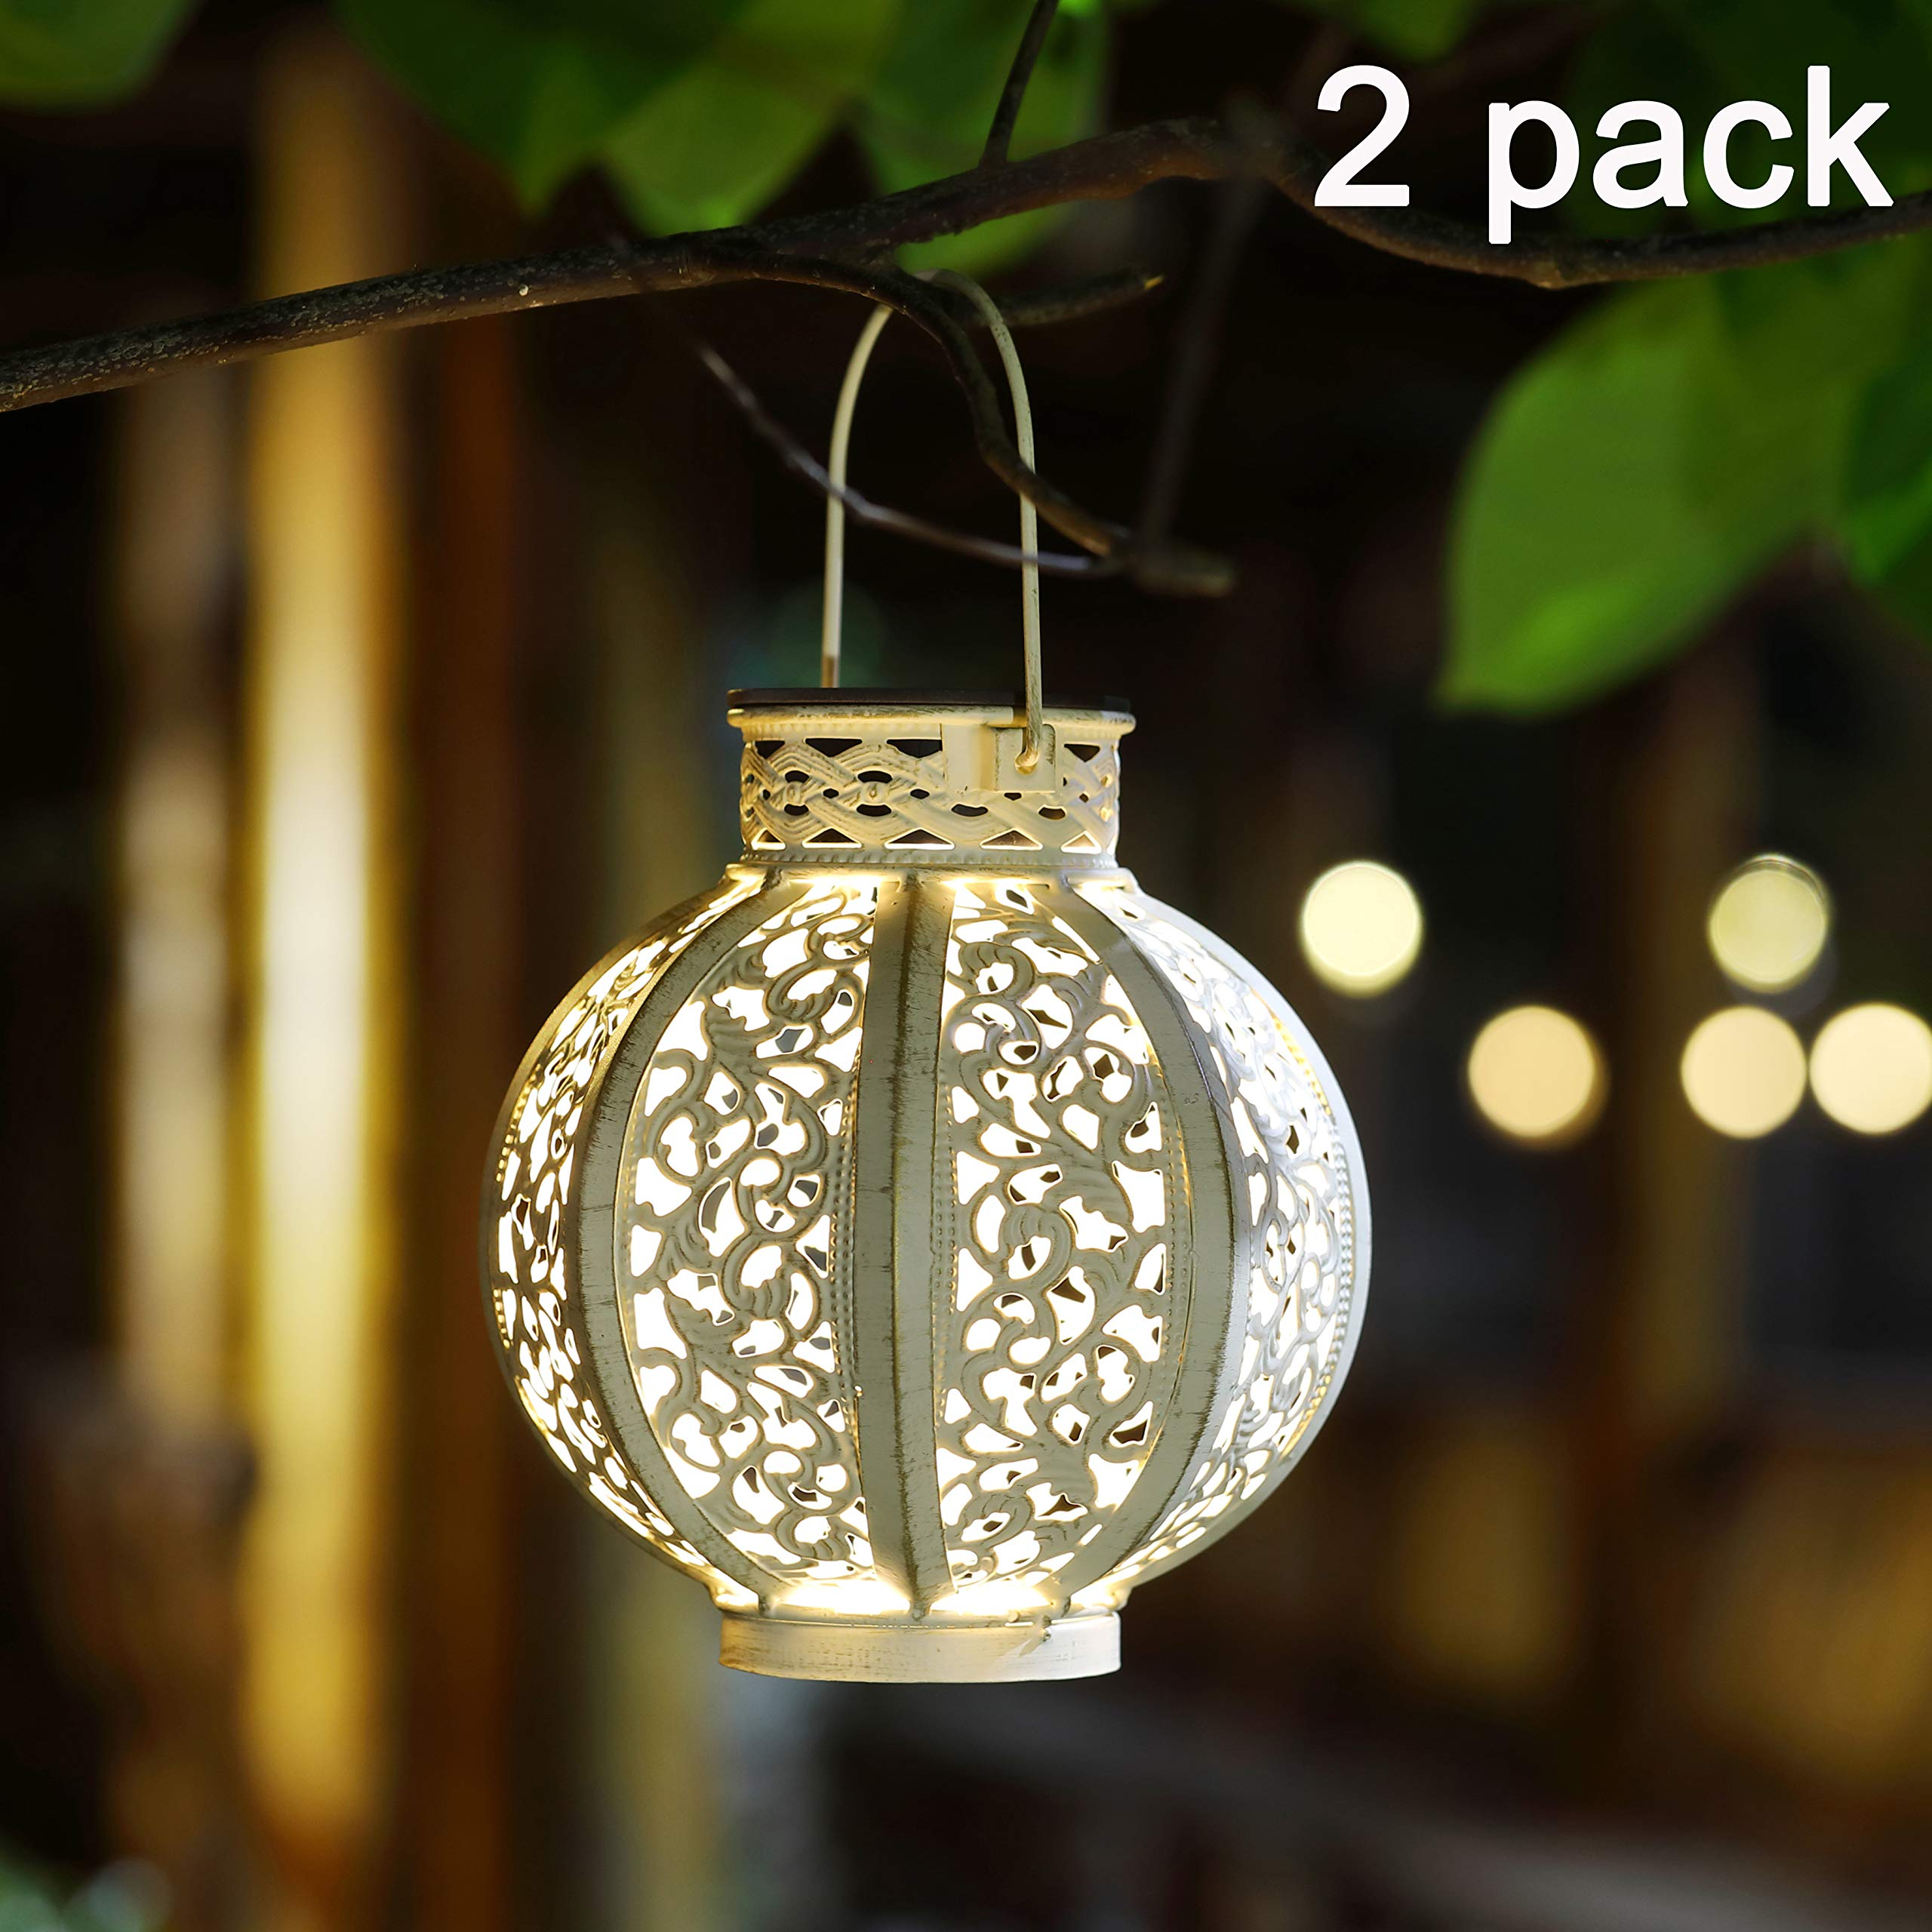 Maggift 2 Pack Hanging Solar Lights Outdoor Solar Lights Retro Hanging Solar Lantern with Handle, 4 Lumens, White by Maggift